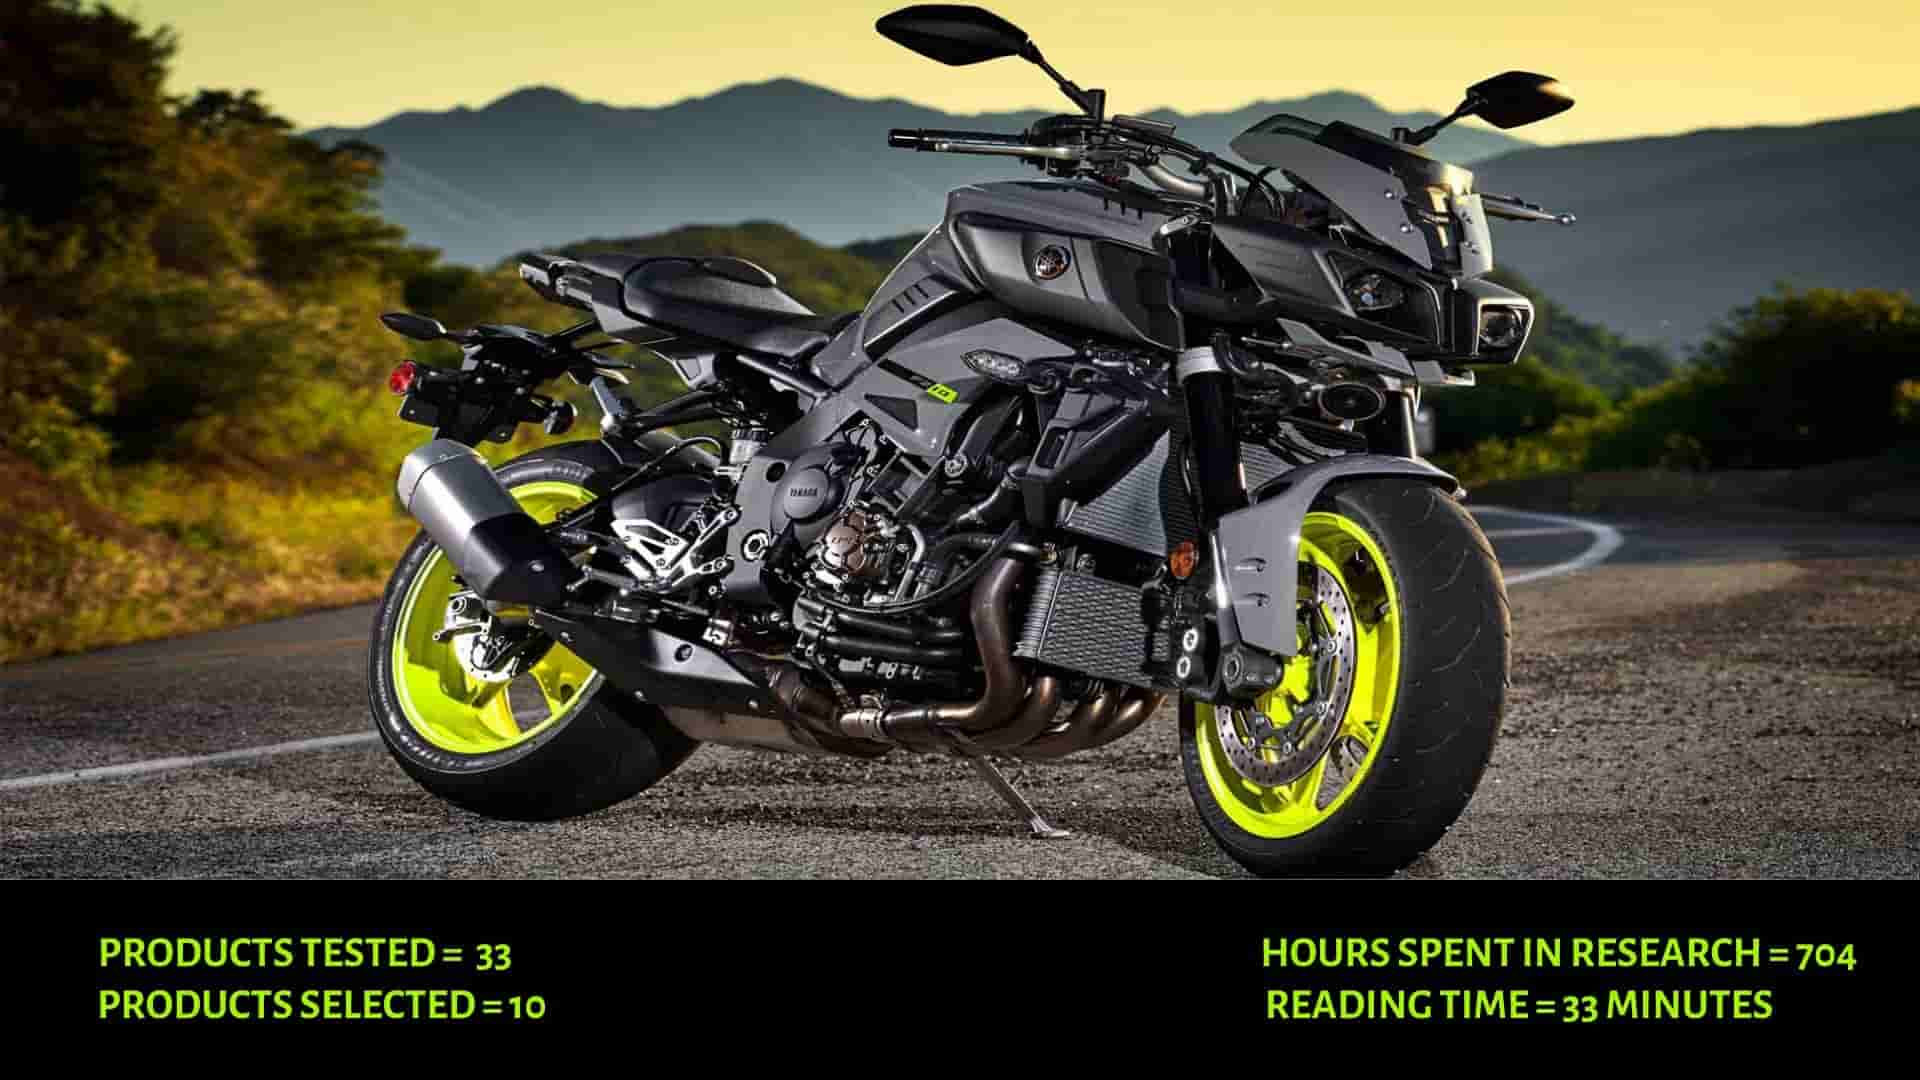 Best Bike Under 3 Lakh in India in 2021 Reviews